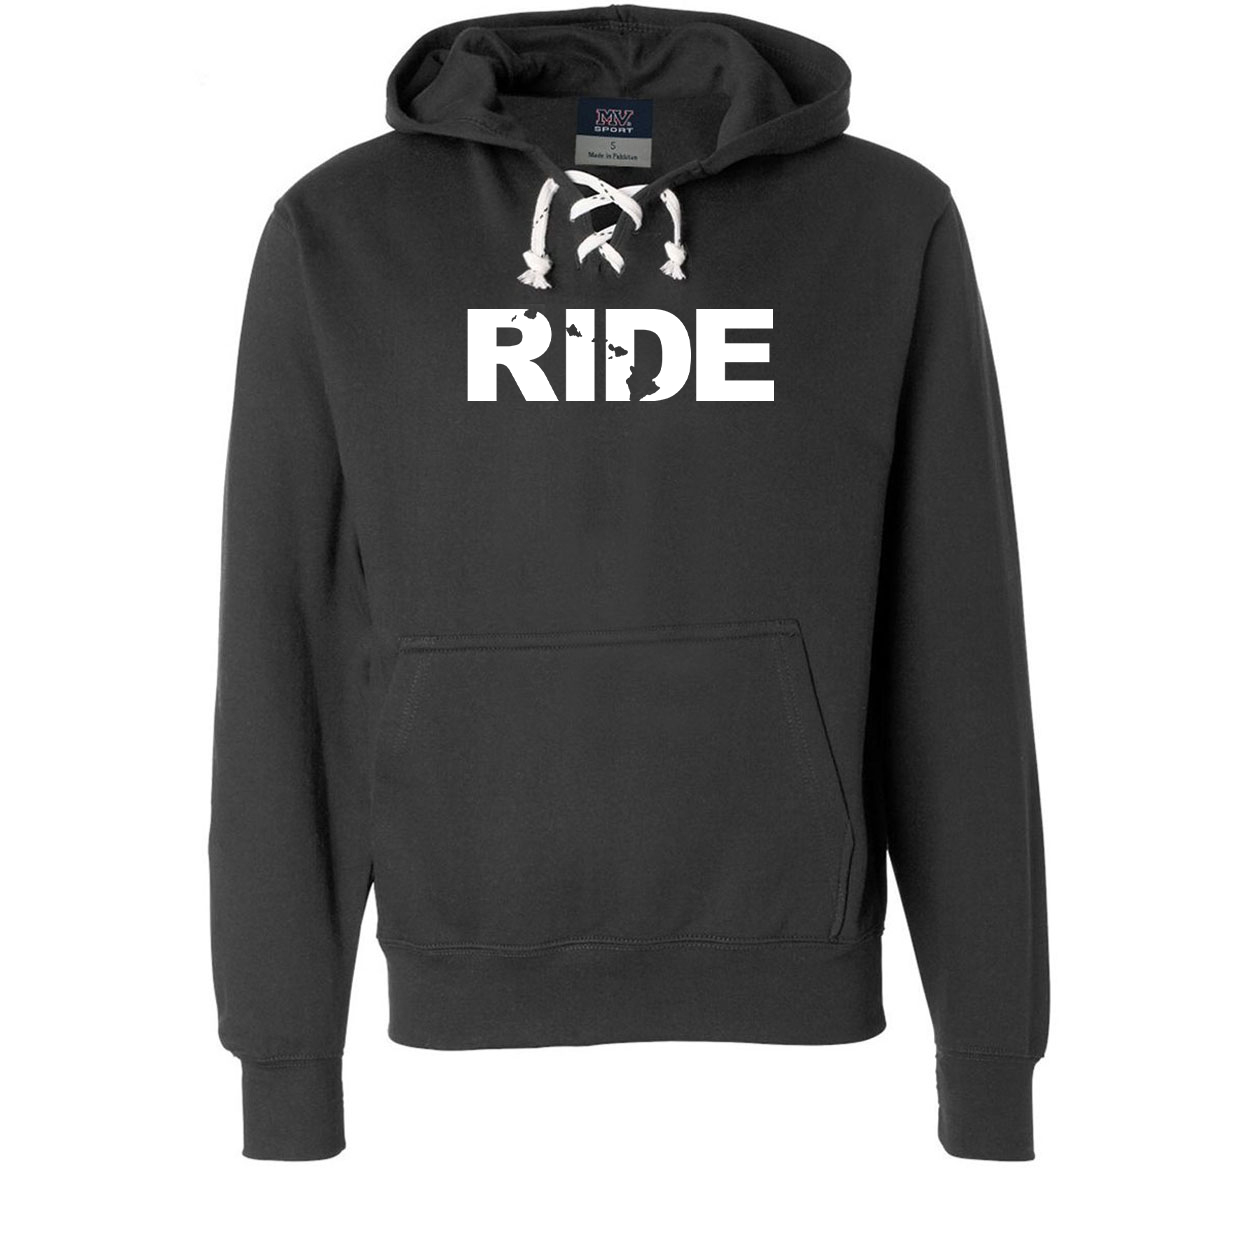 Ride Hawaii Classic Unisex Premium Hockey Sweatshirt Black (White Logo)